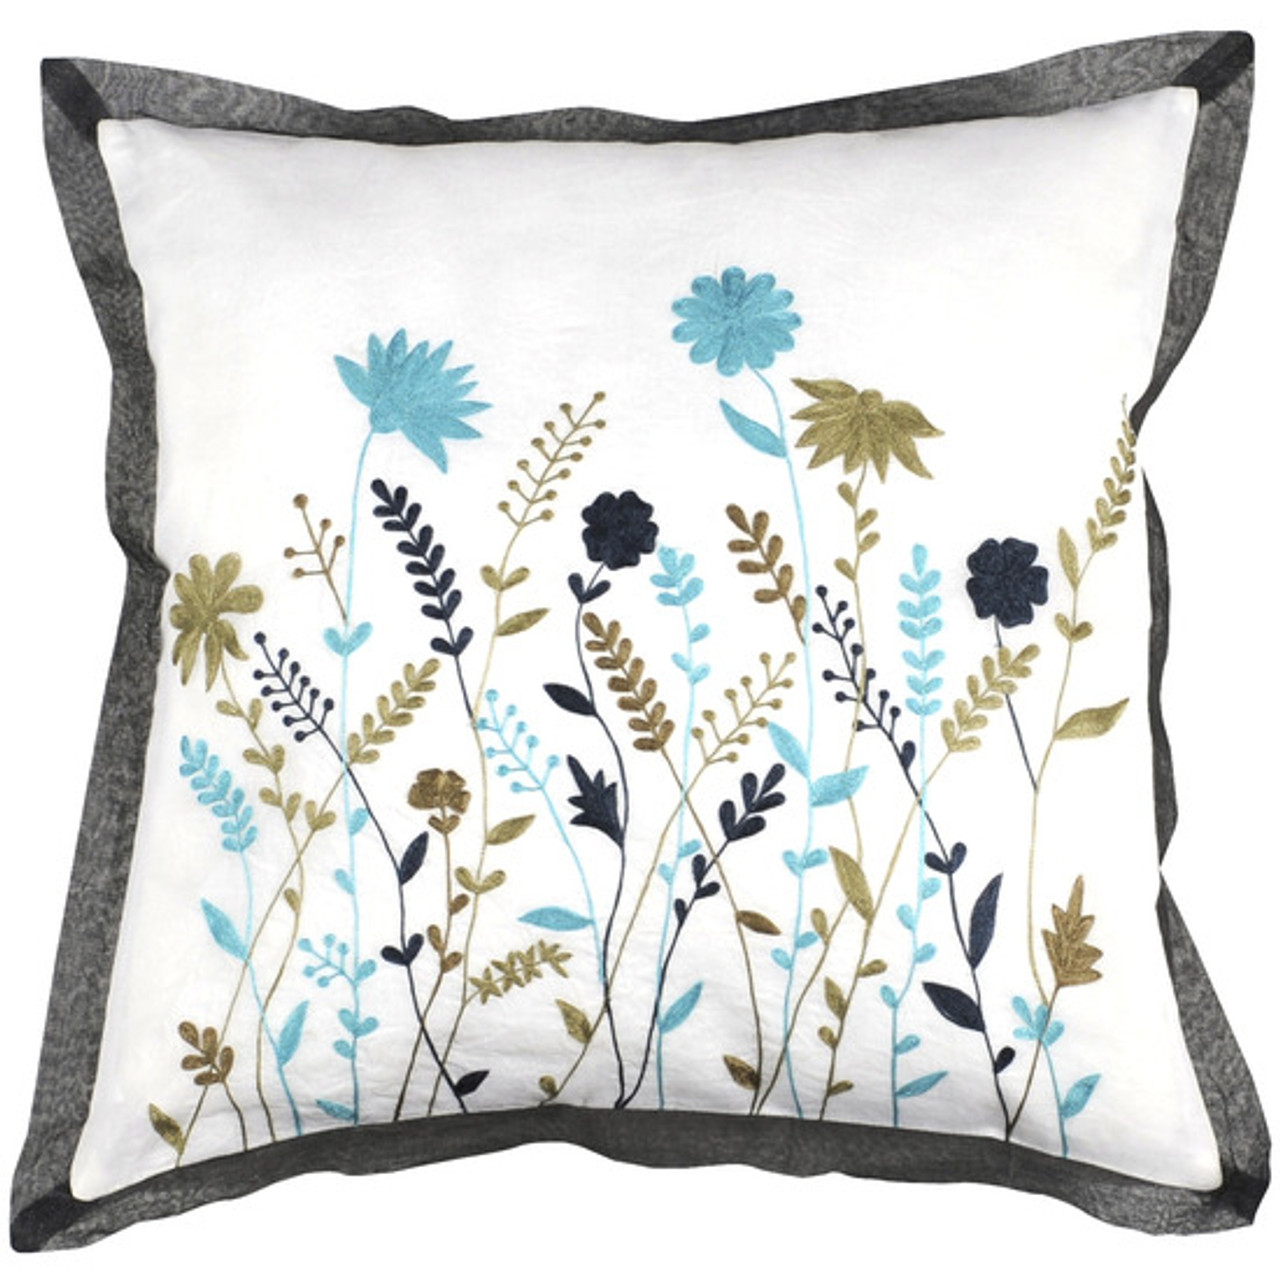 Big White Throw Pillows : 22